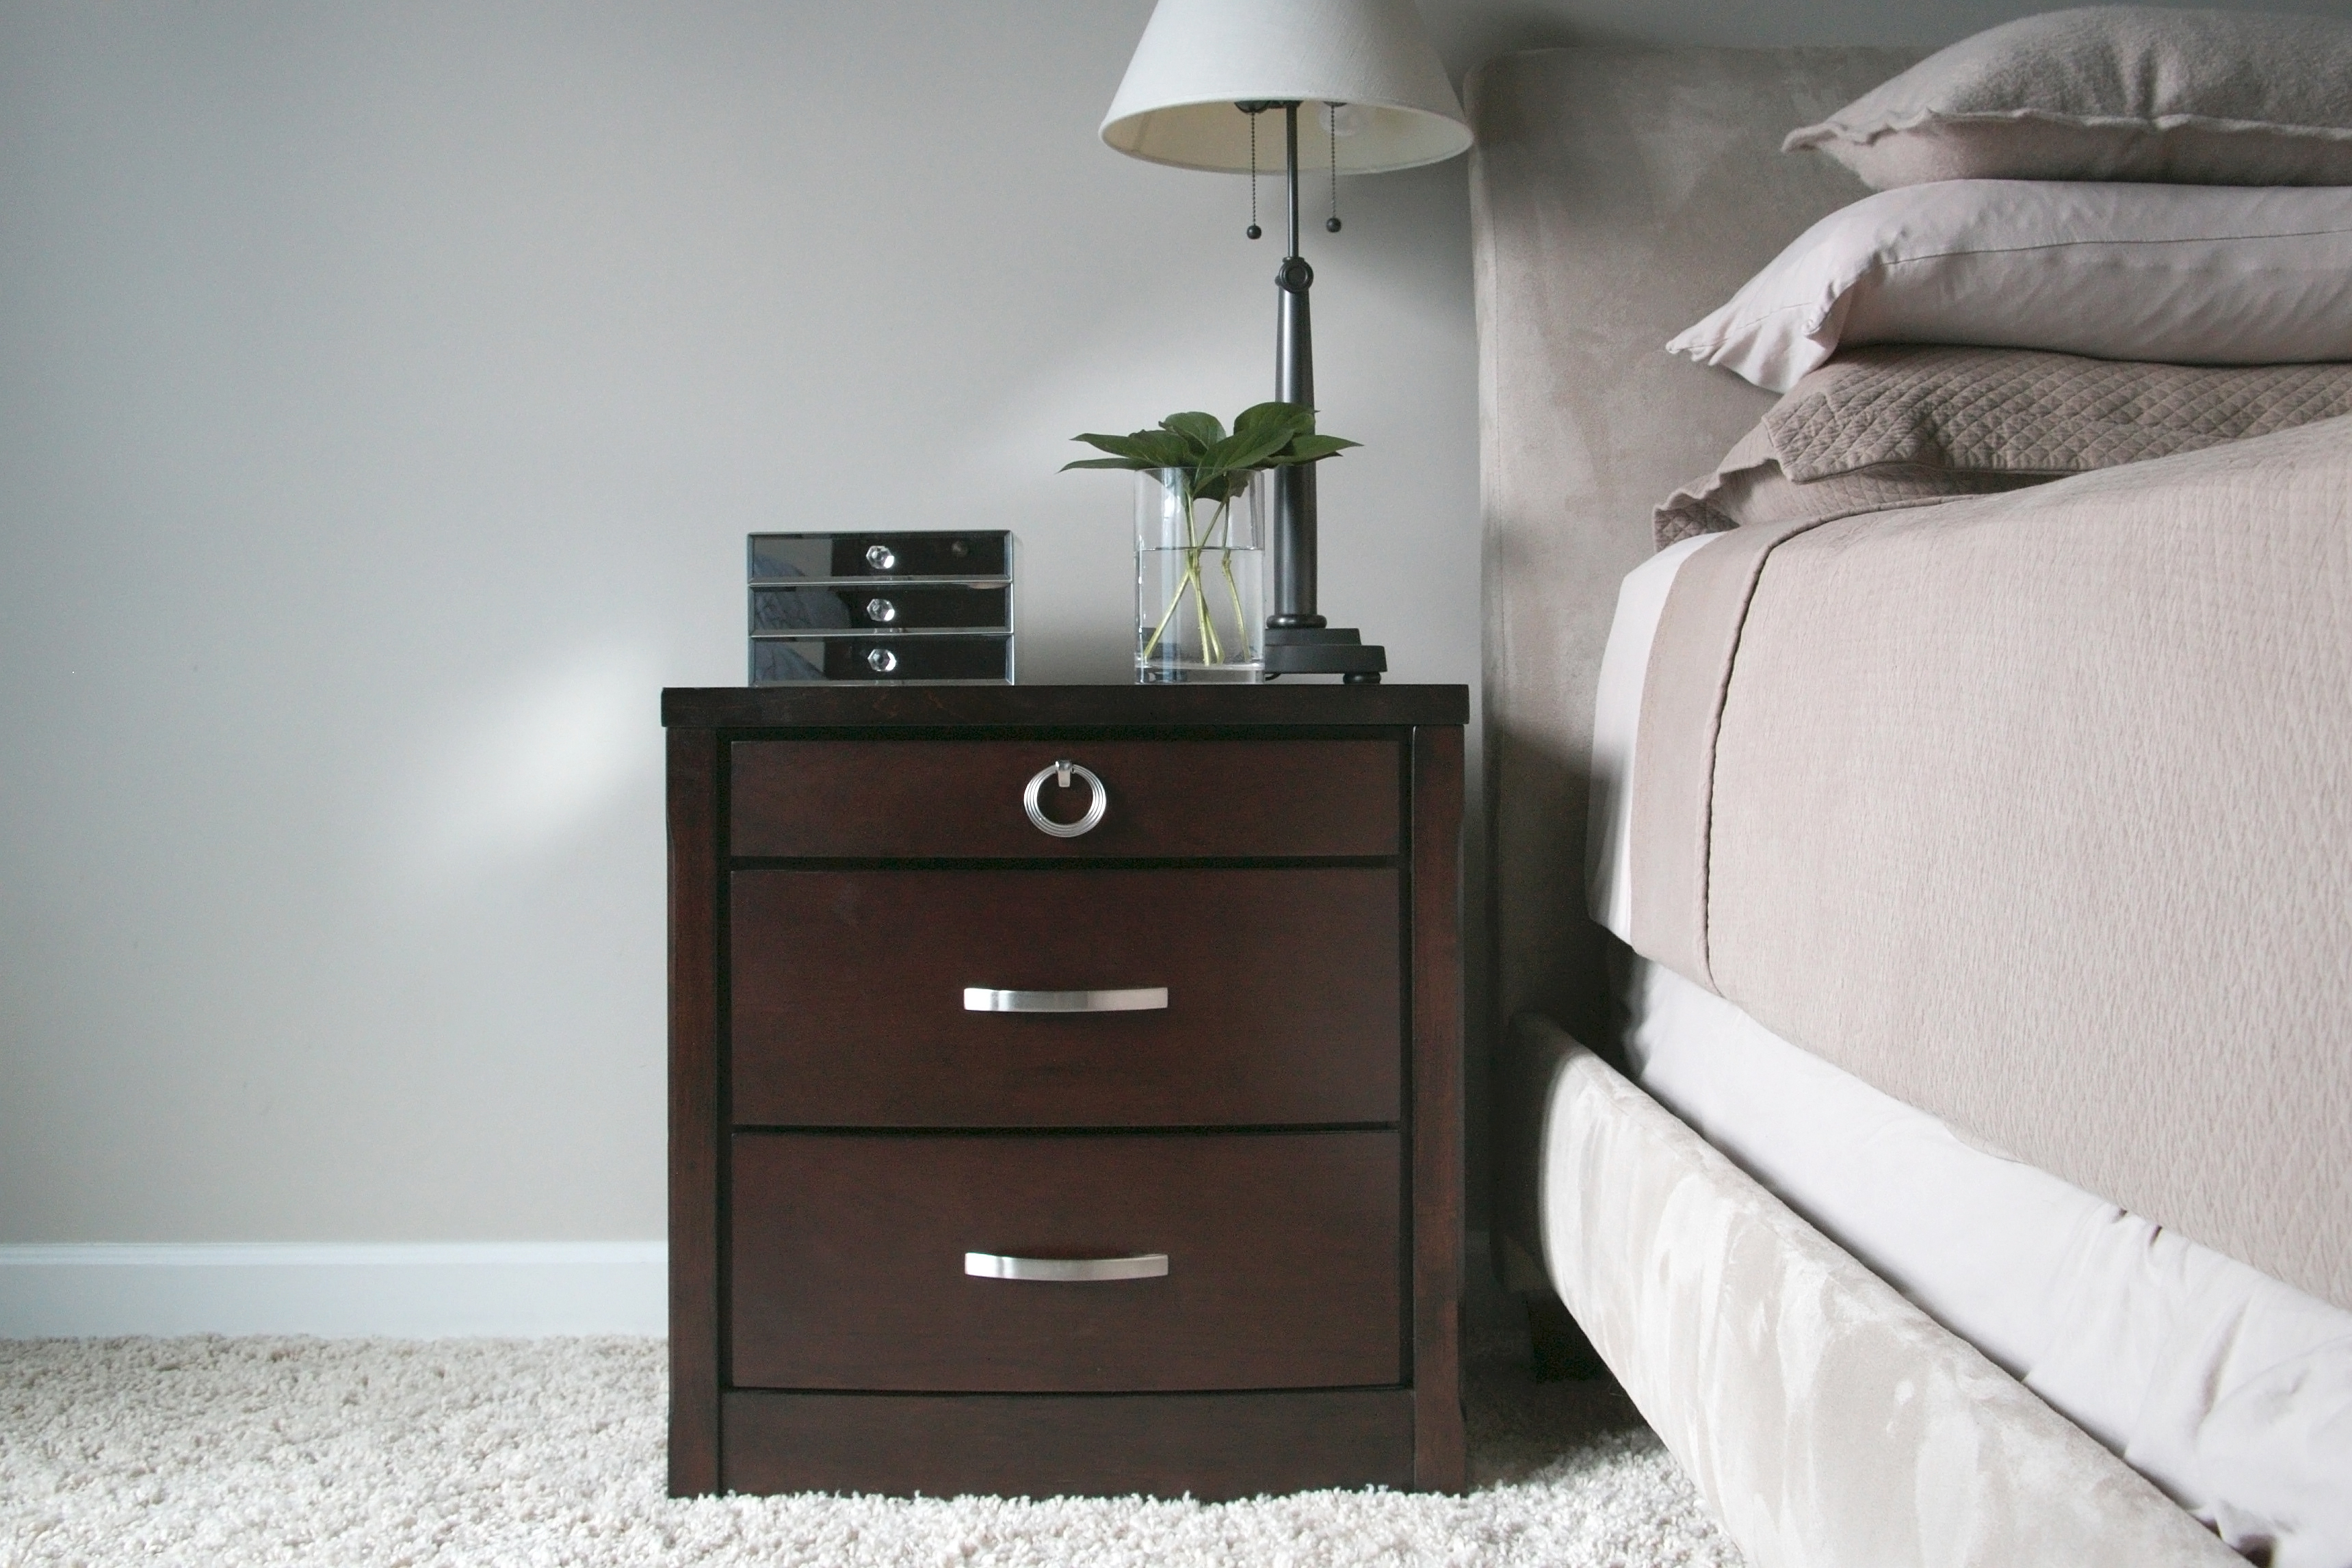 Baxton Studio Argonne Nightstand Argonne Nightstand, Wholesale Furniture,  Restaurant Furniture, Hotel Furniture,